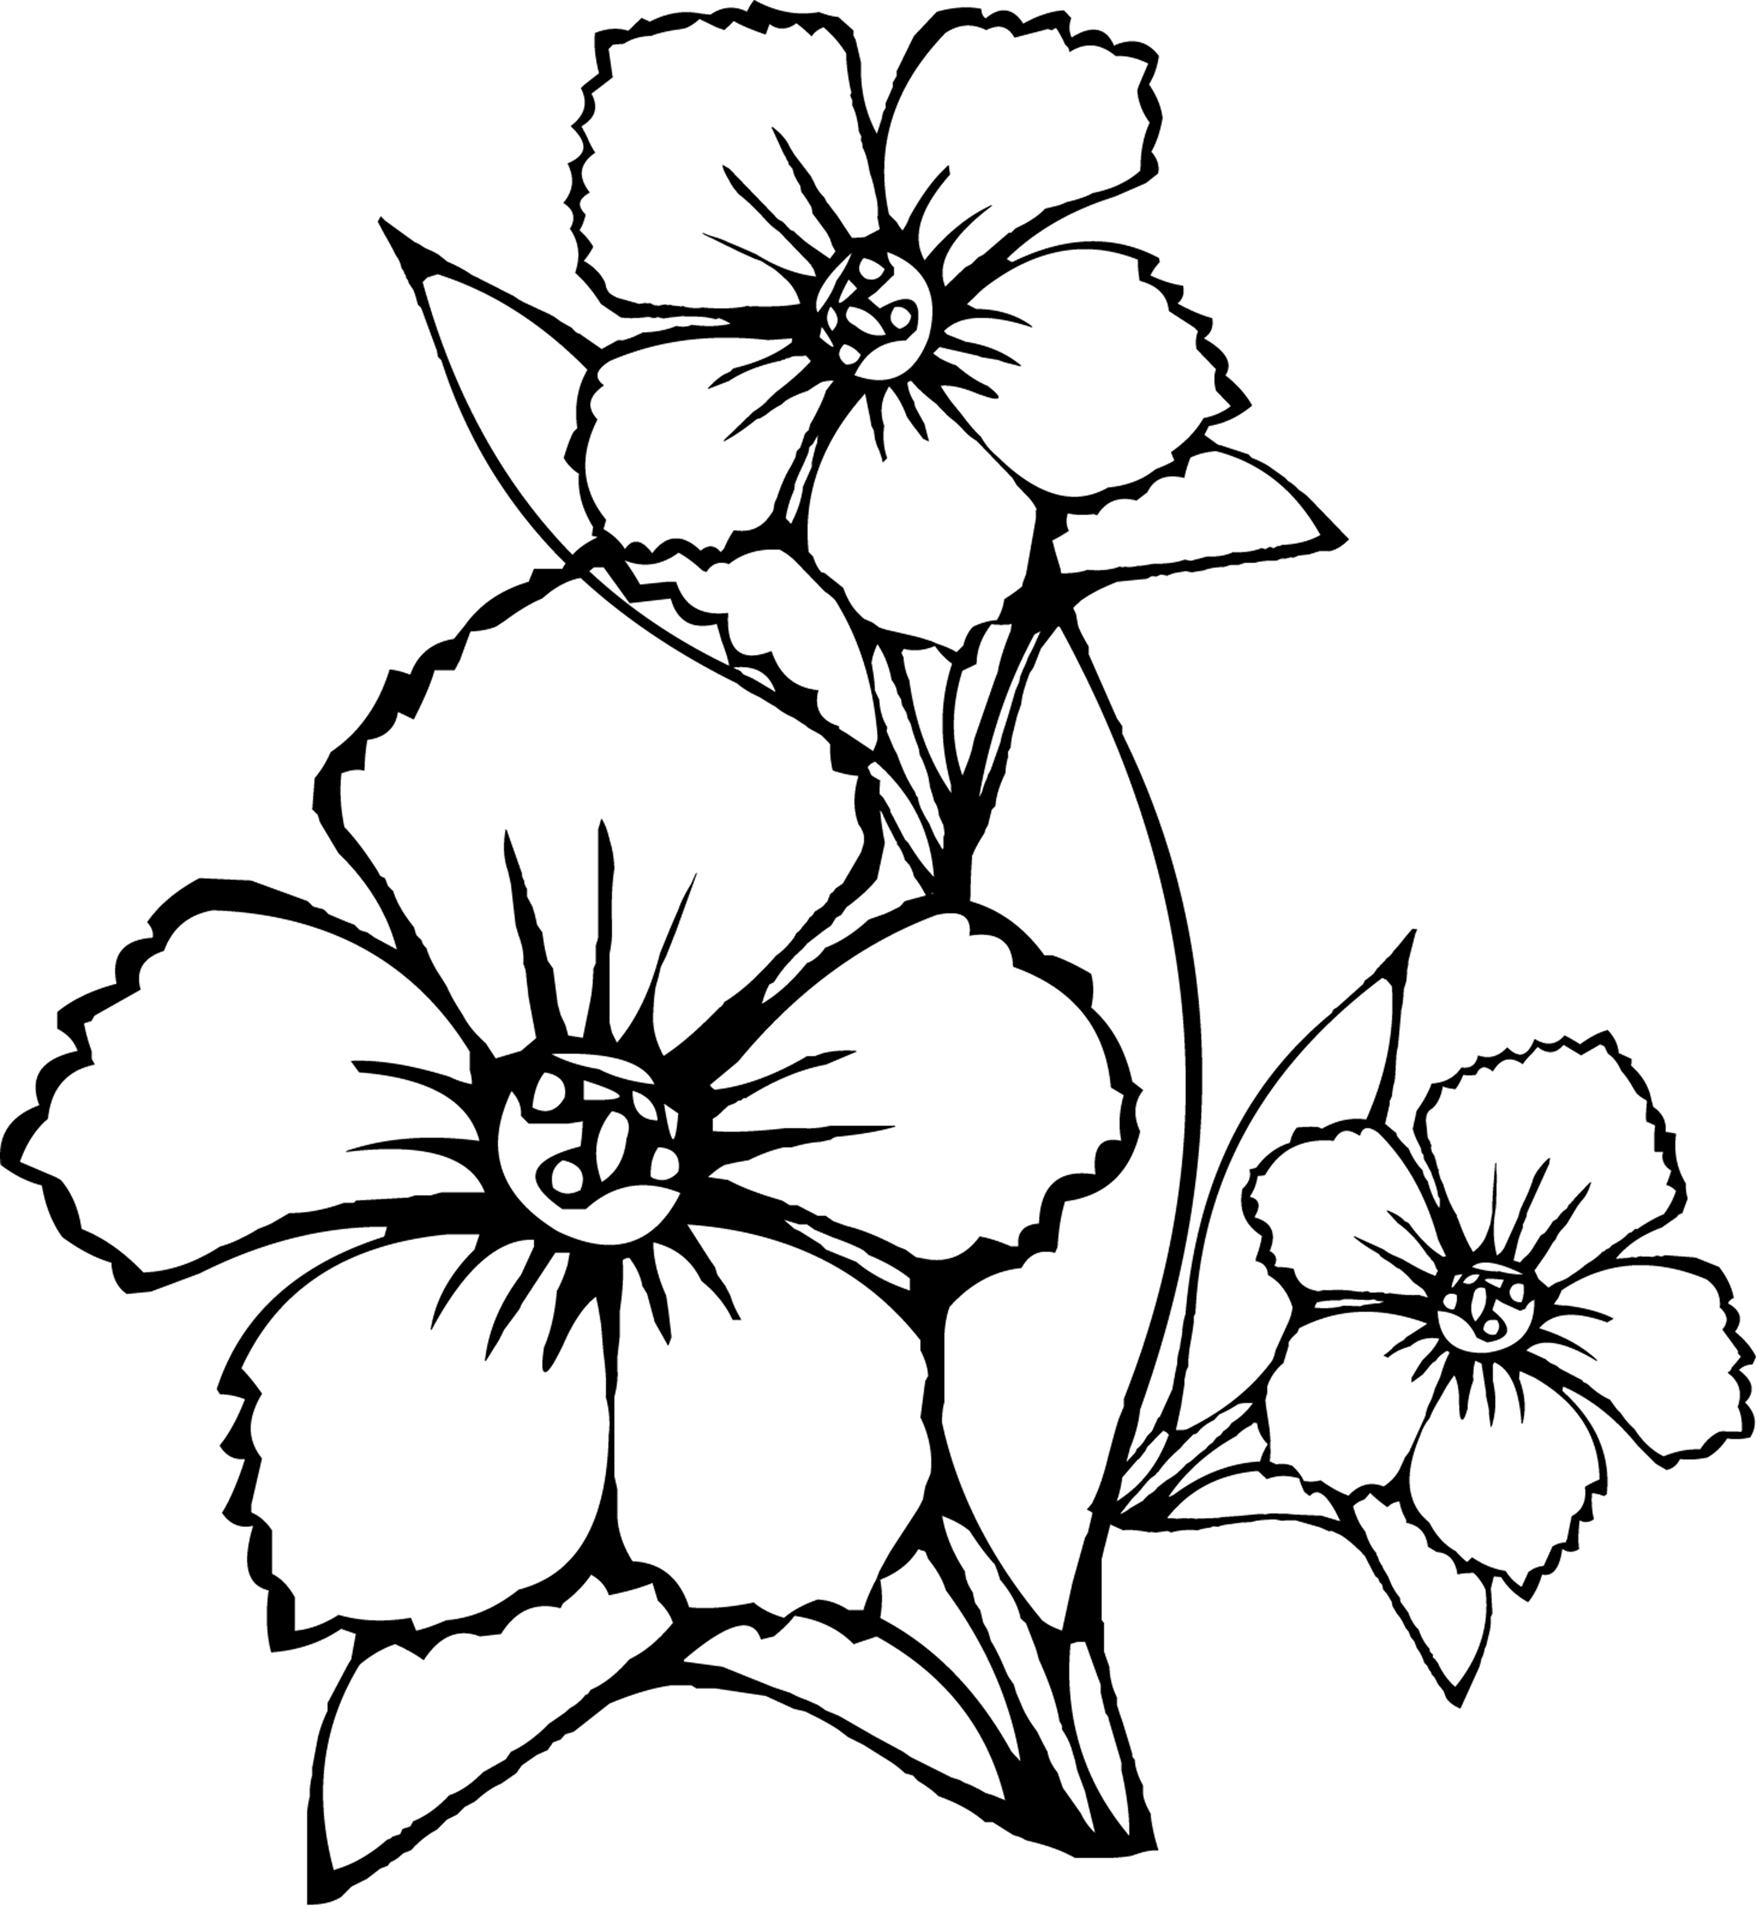 colouring page of flowers free printable flower coloring pages for kids best of page colouring flowers